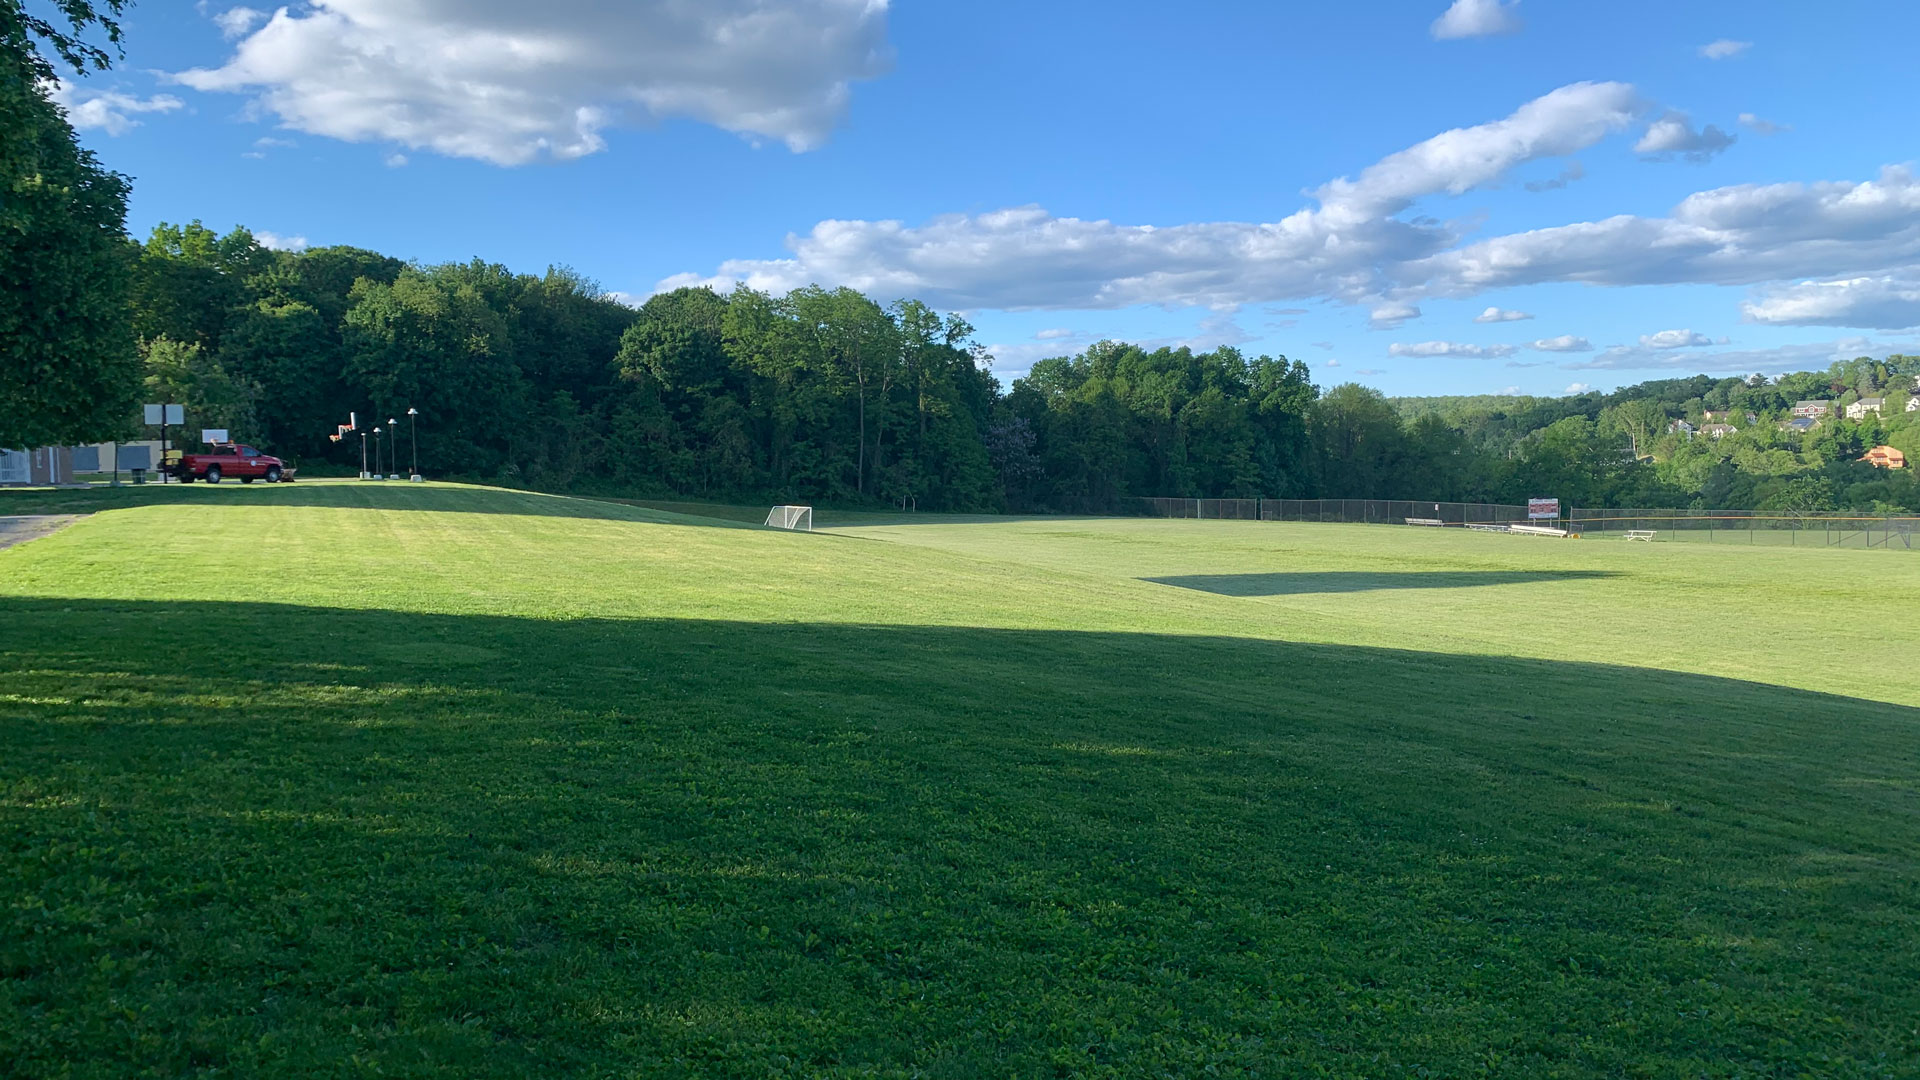 The Anne M. Dorner Middle School Soccer Field